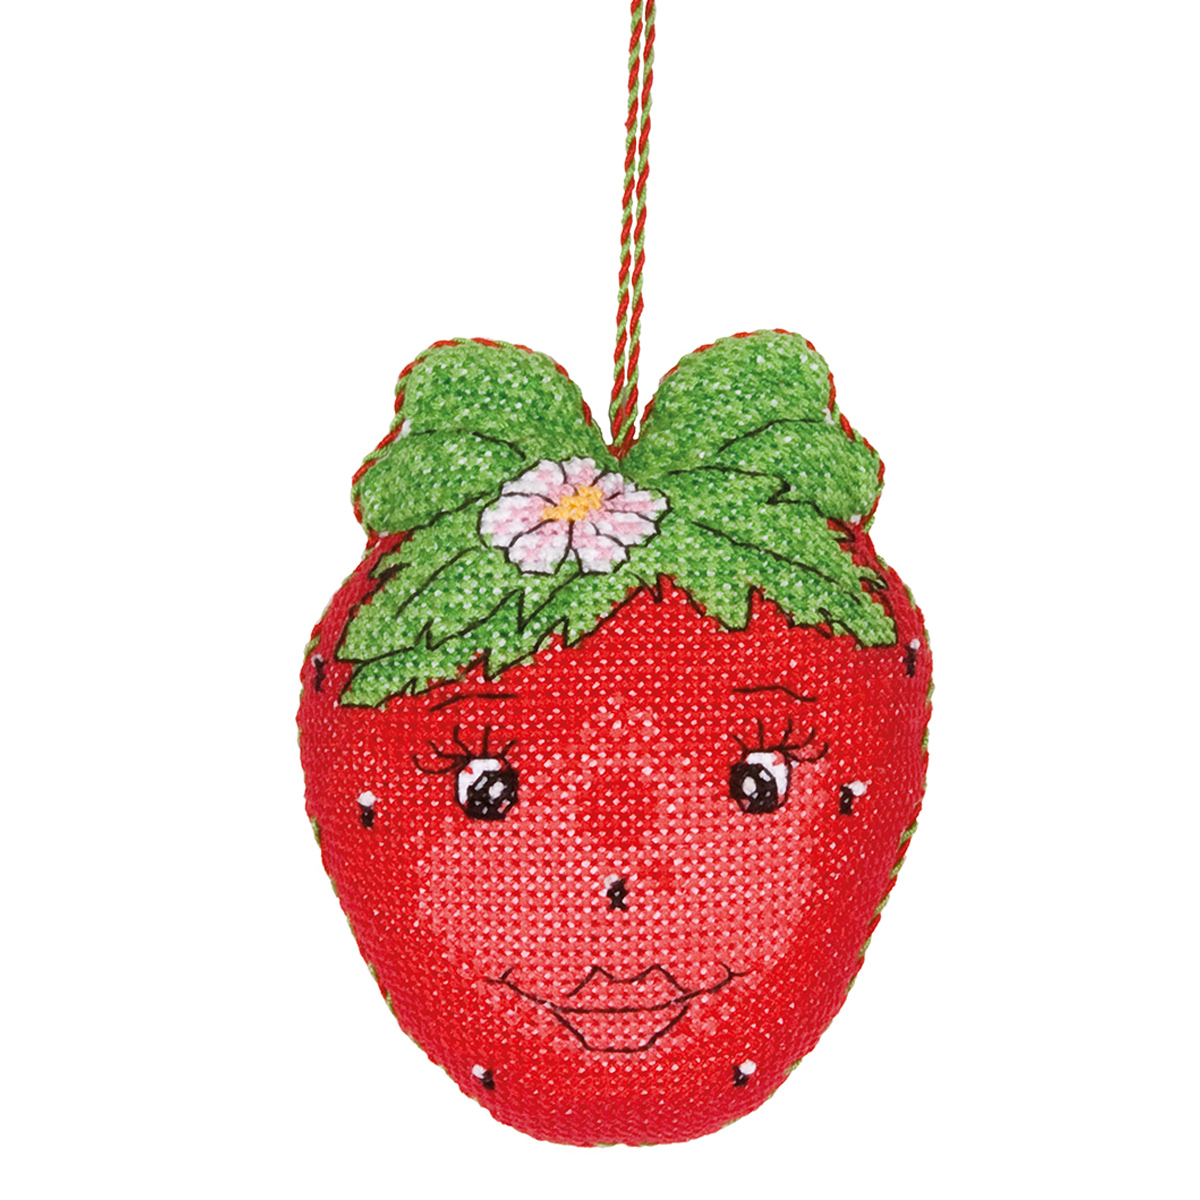 Embroidery kits PANNA IG-1419 Toy. Strawberry